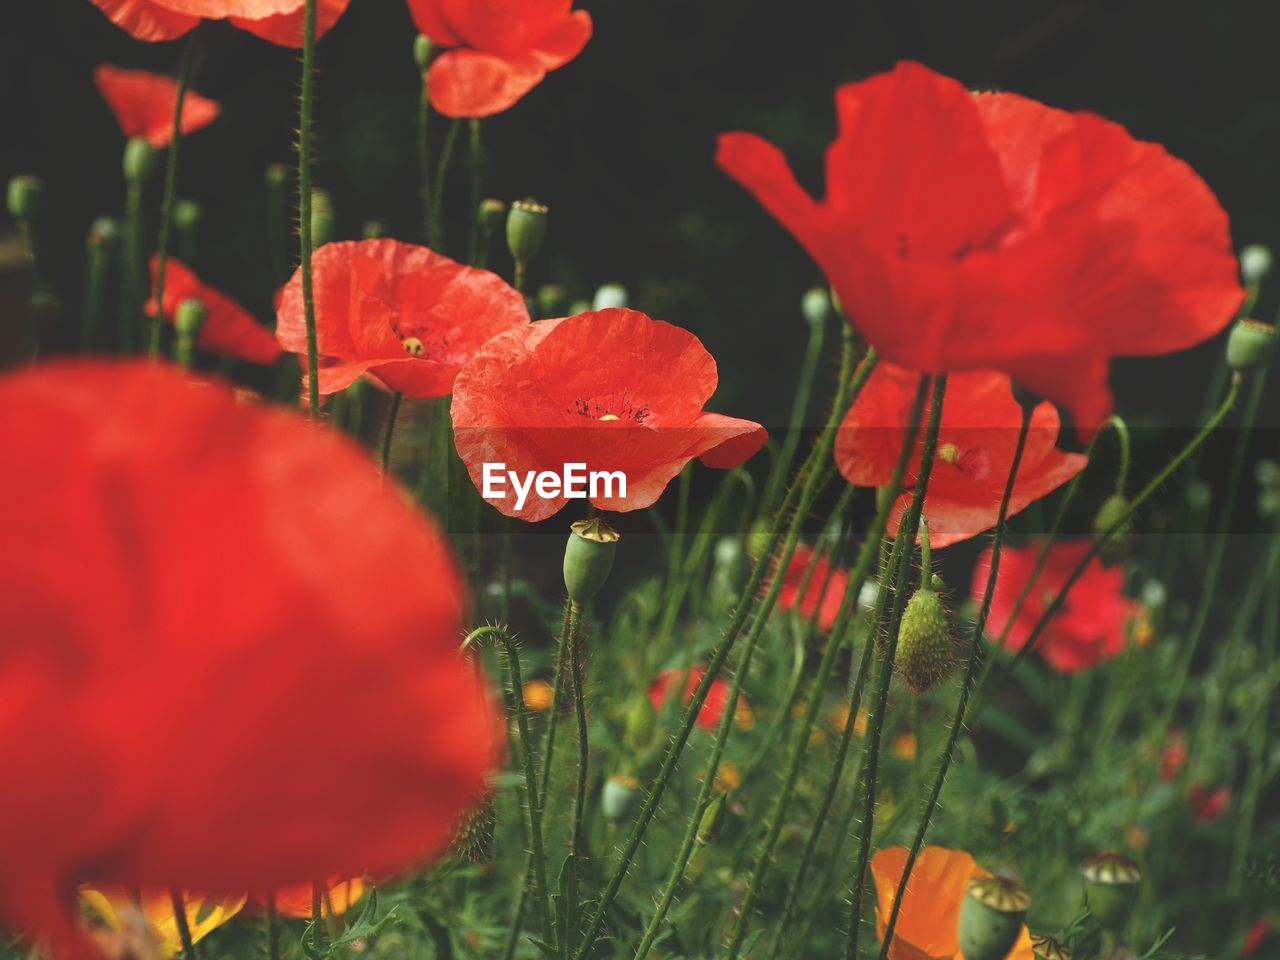 flowering plant, plant, flower, growth, freshness, fragility, vulnerability, beauty in nature, petal, close-up, nature, inflorescence, red, flower head, poppy, no people, field, land, outdoors, day, spring, purity, orange